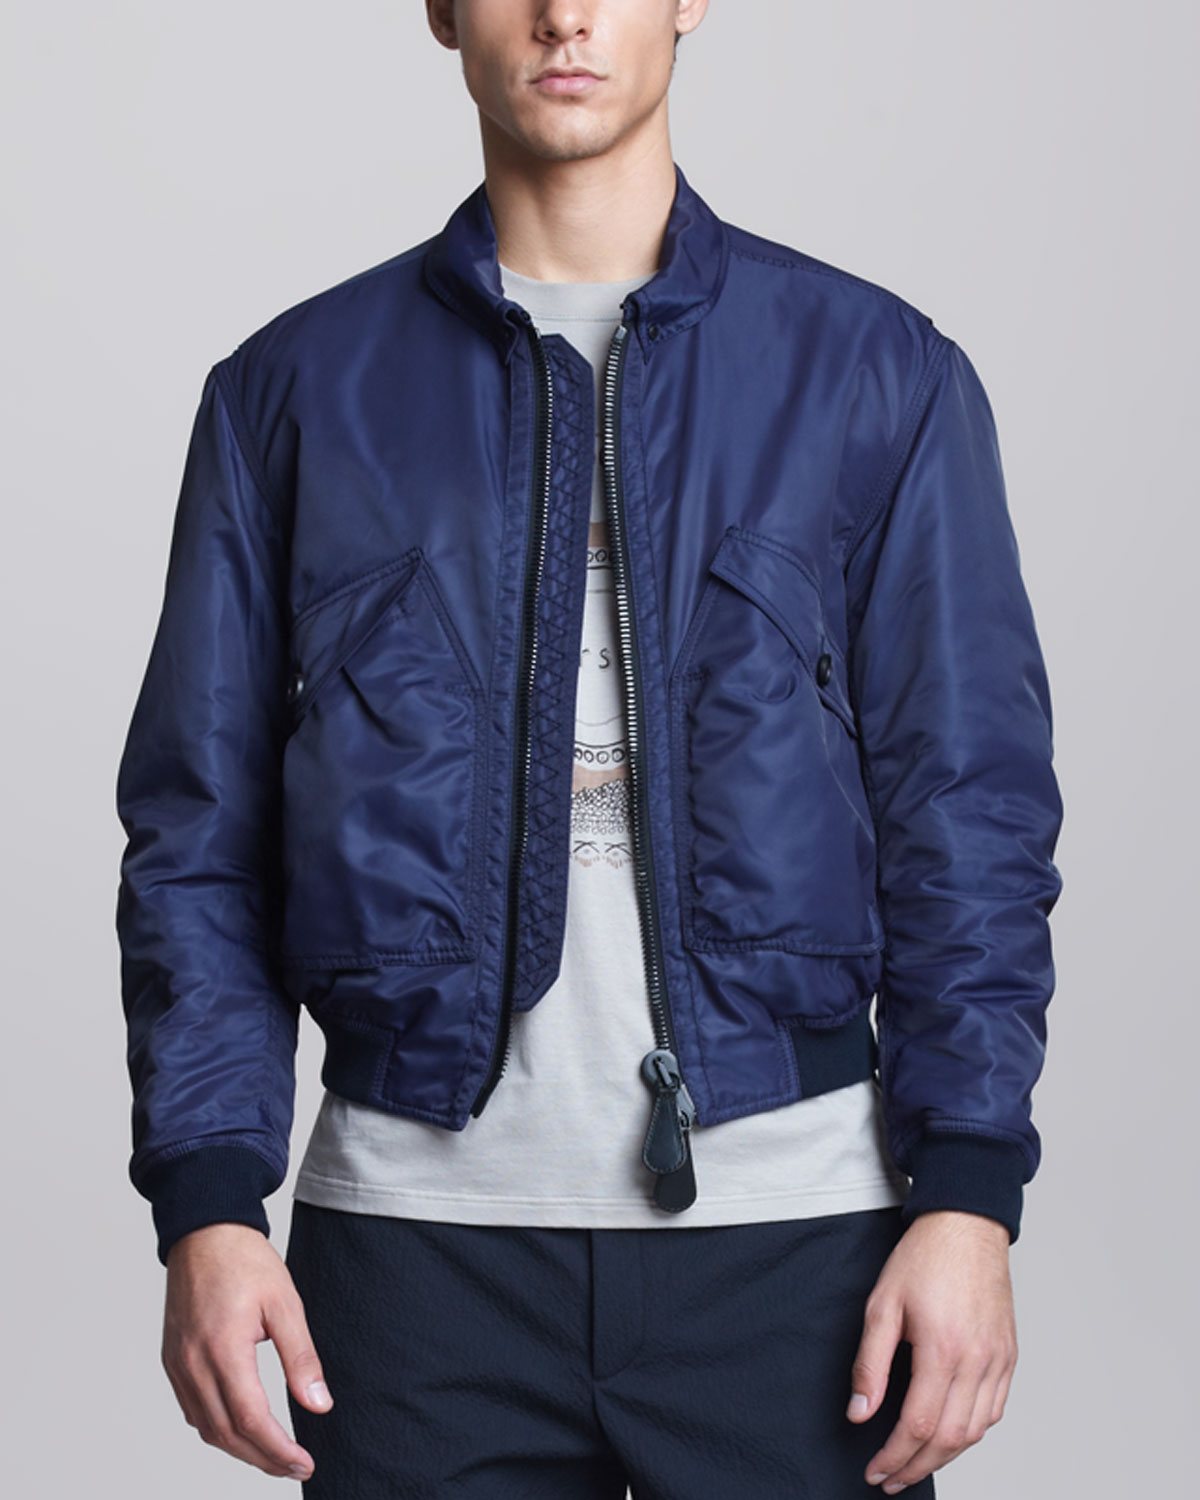 Burberry prorsum Nylon Bomber Jacket in Blue for Men | Lyst